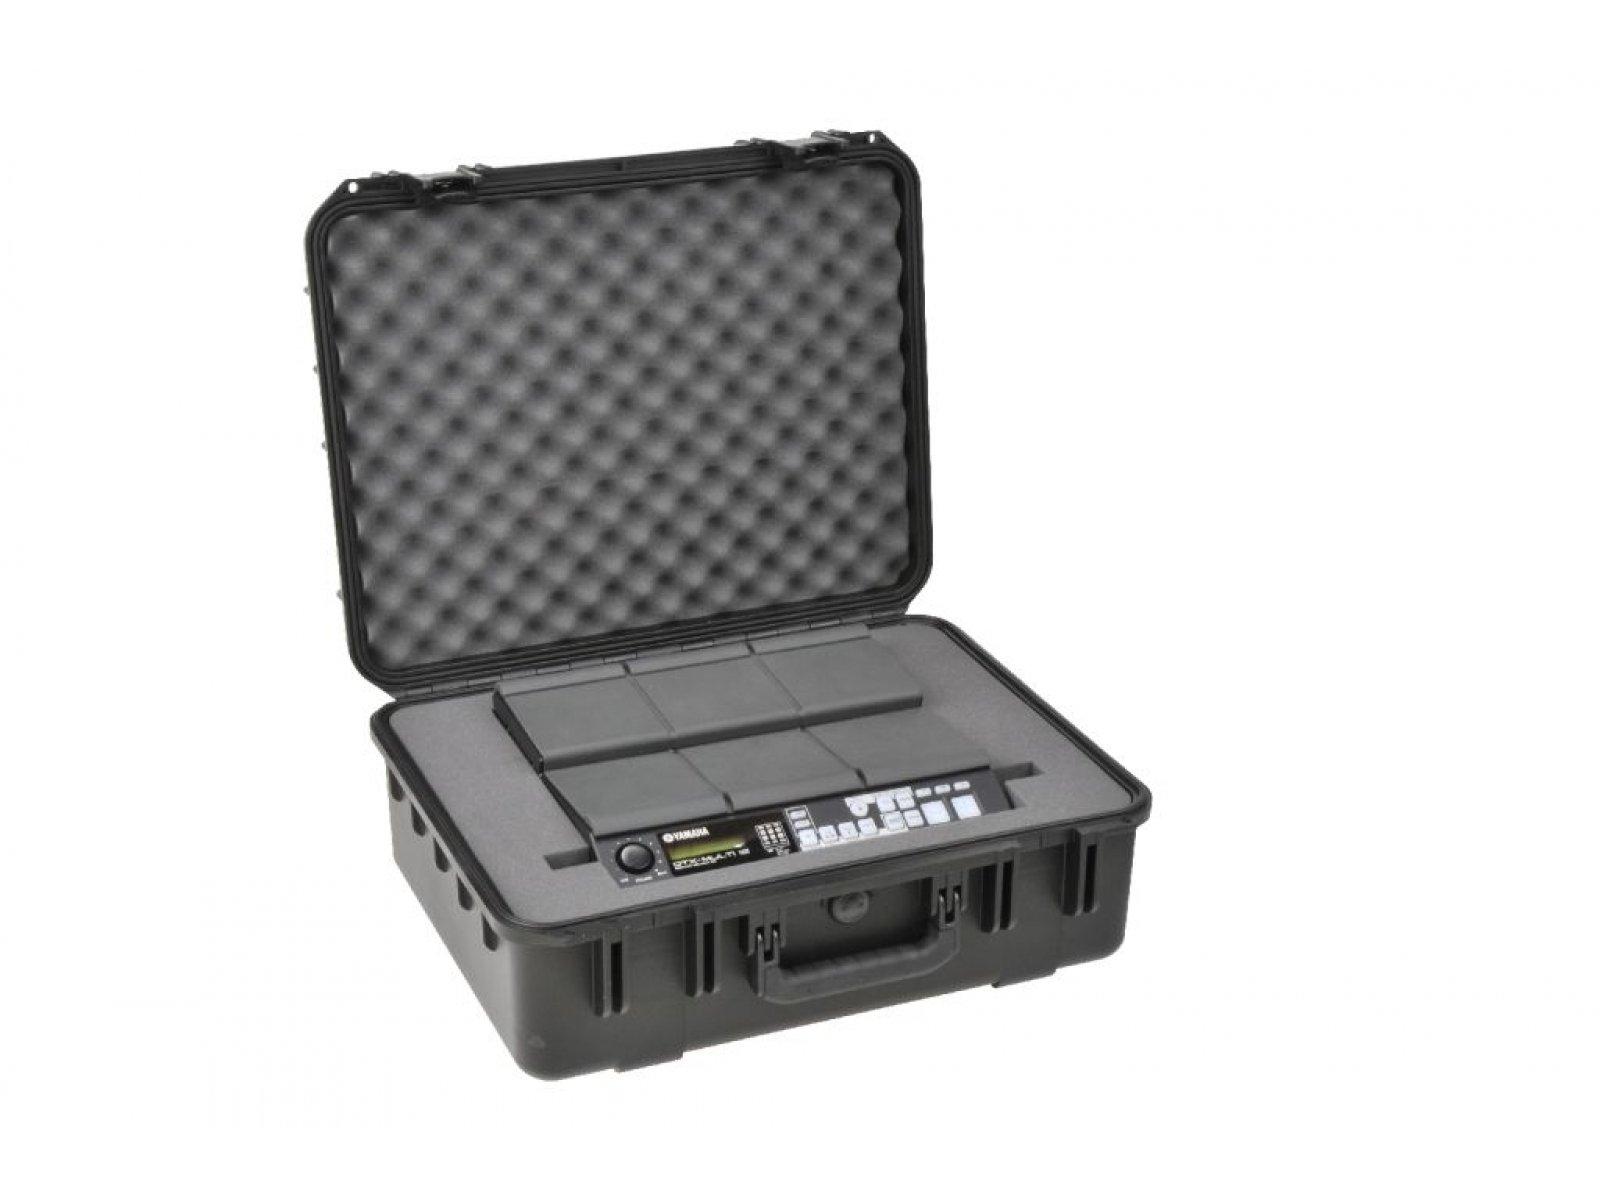 case 12 3 Helloi am seeking advice on a case with 16 or more 35 with one 525 for the optical and a cage to convert 3 525 bays into 4 35 bays this would yield 12 35.